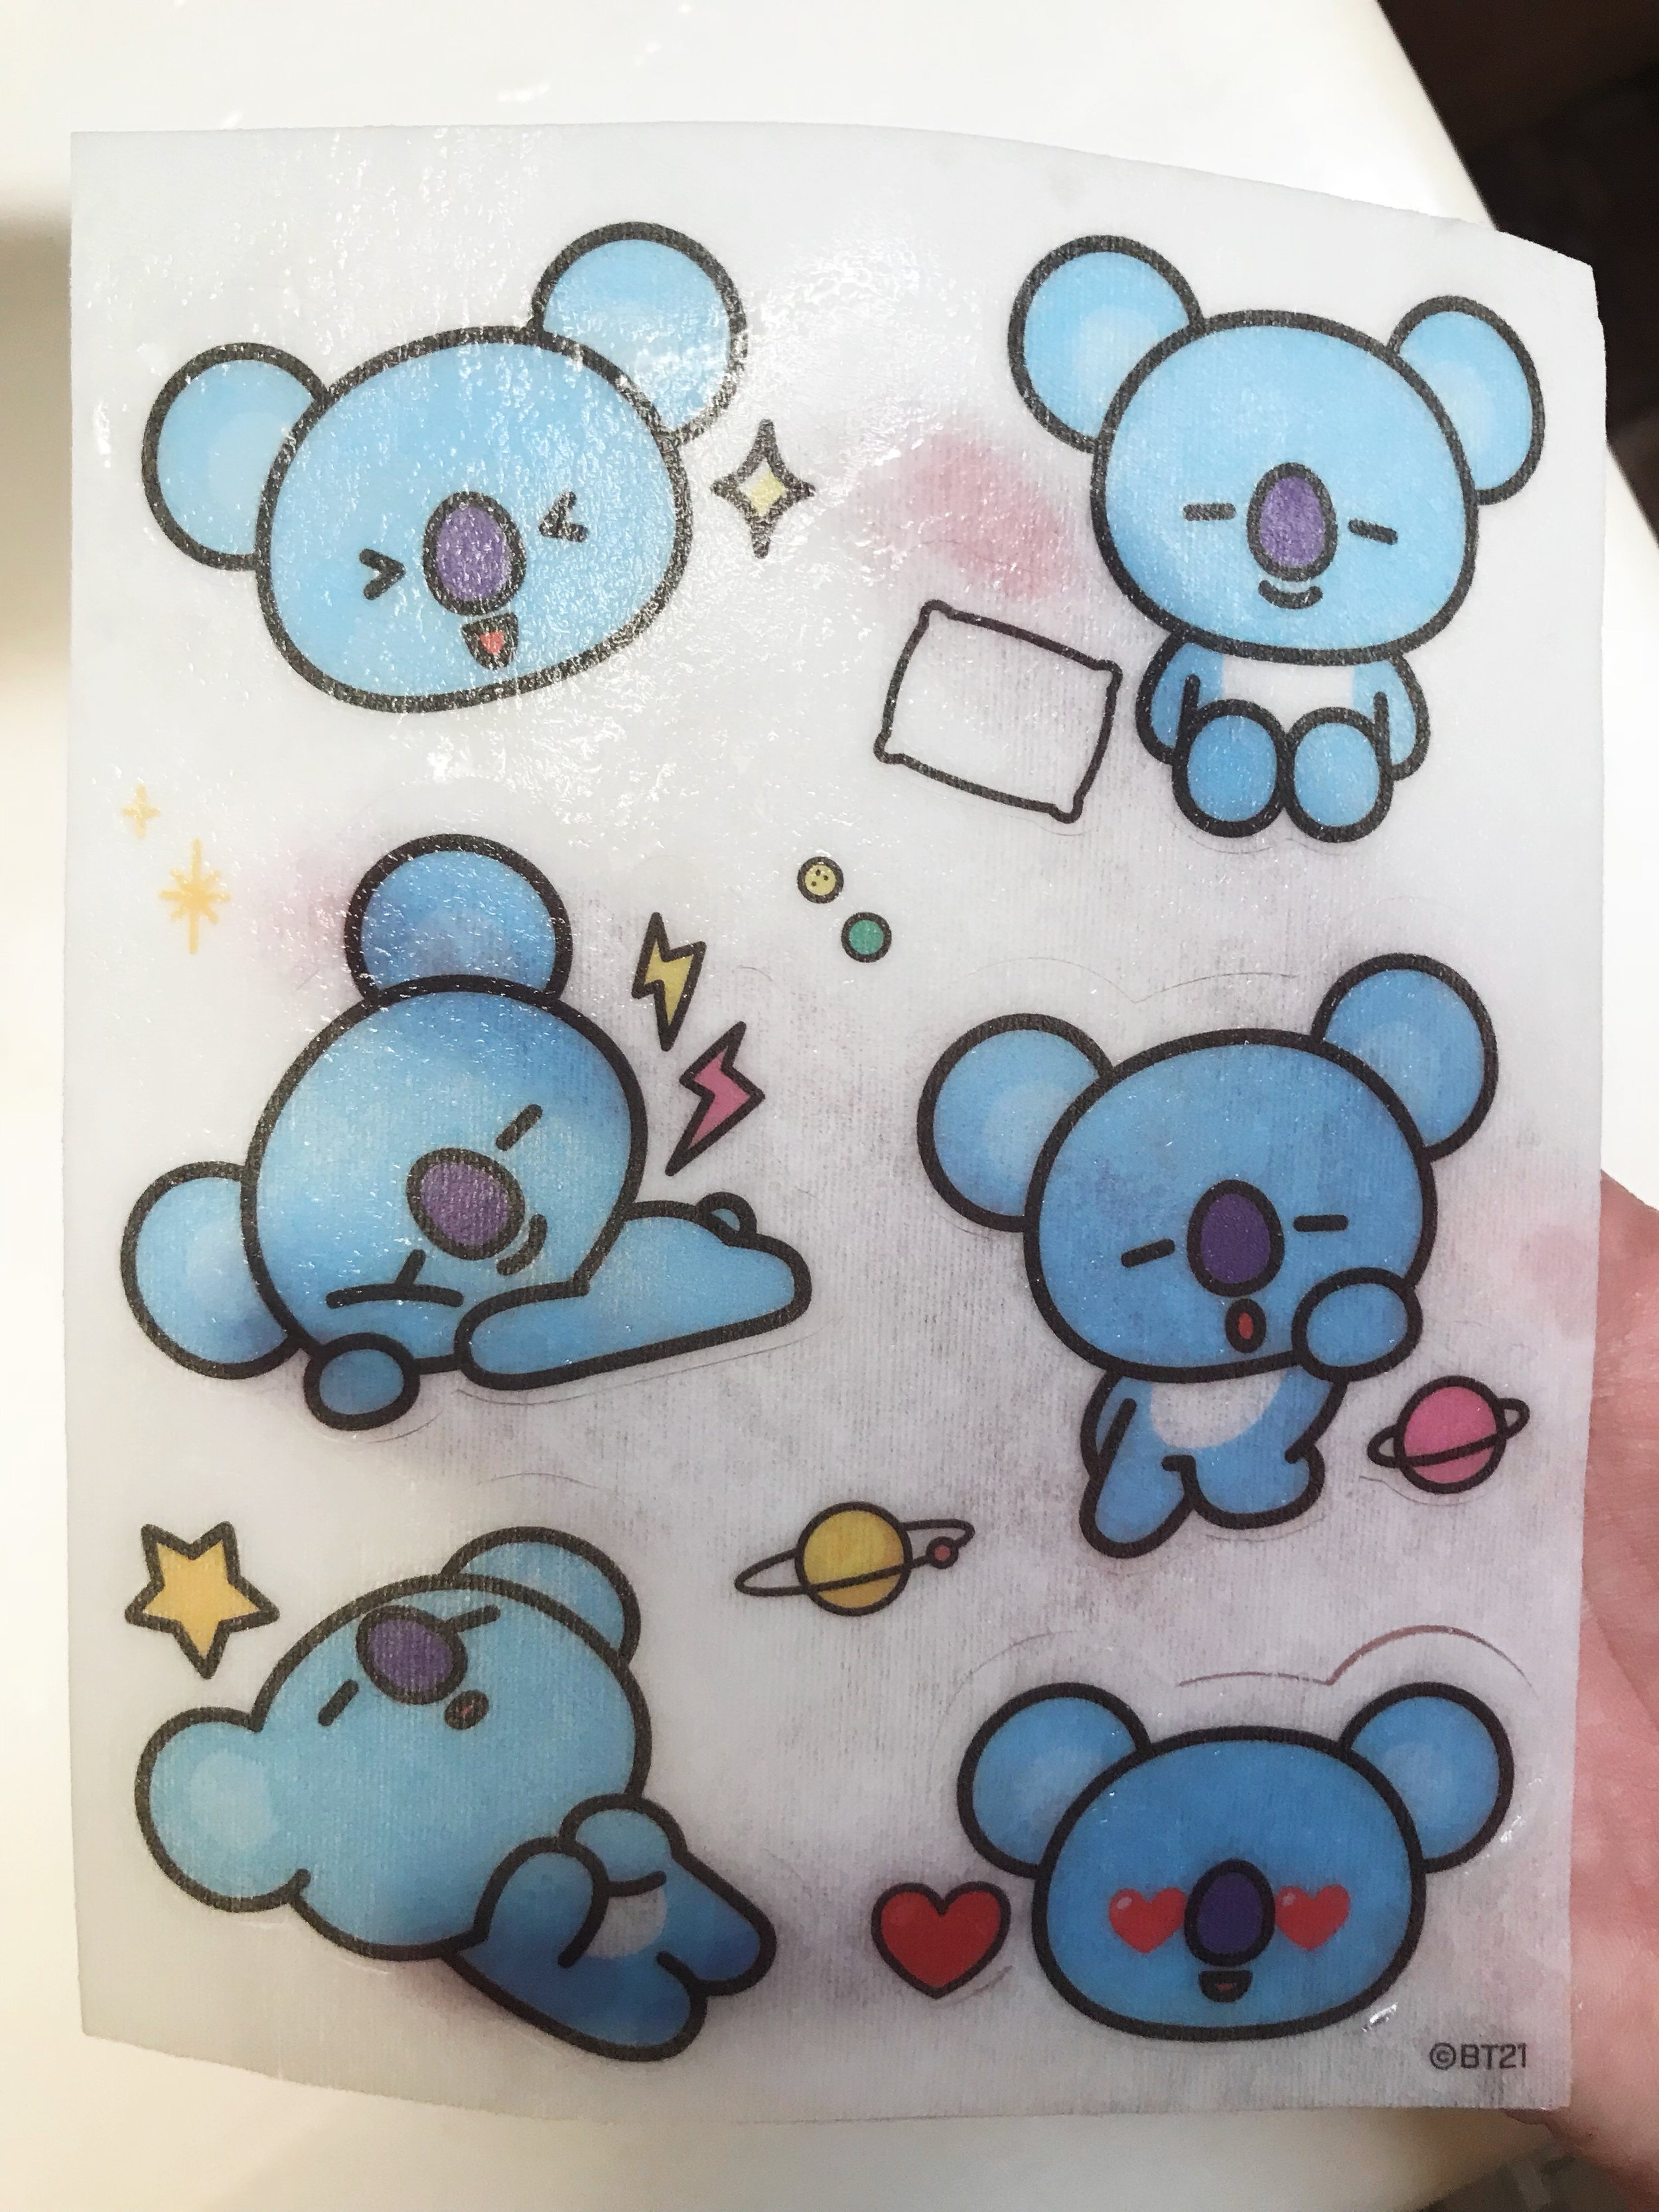 How cute are these stickers of Koya??